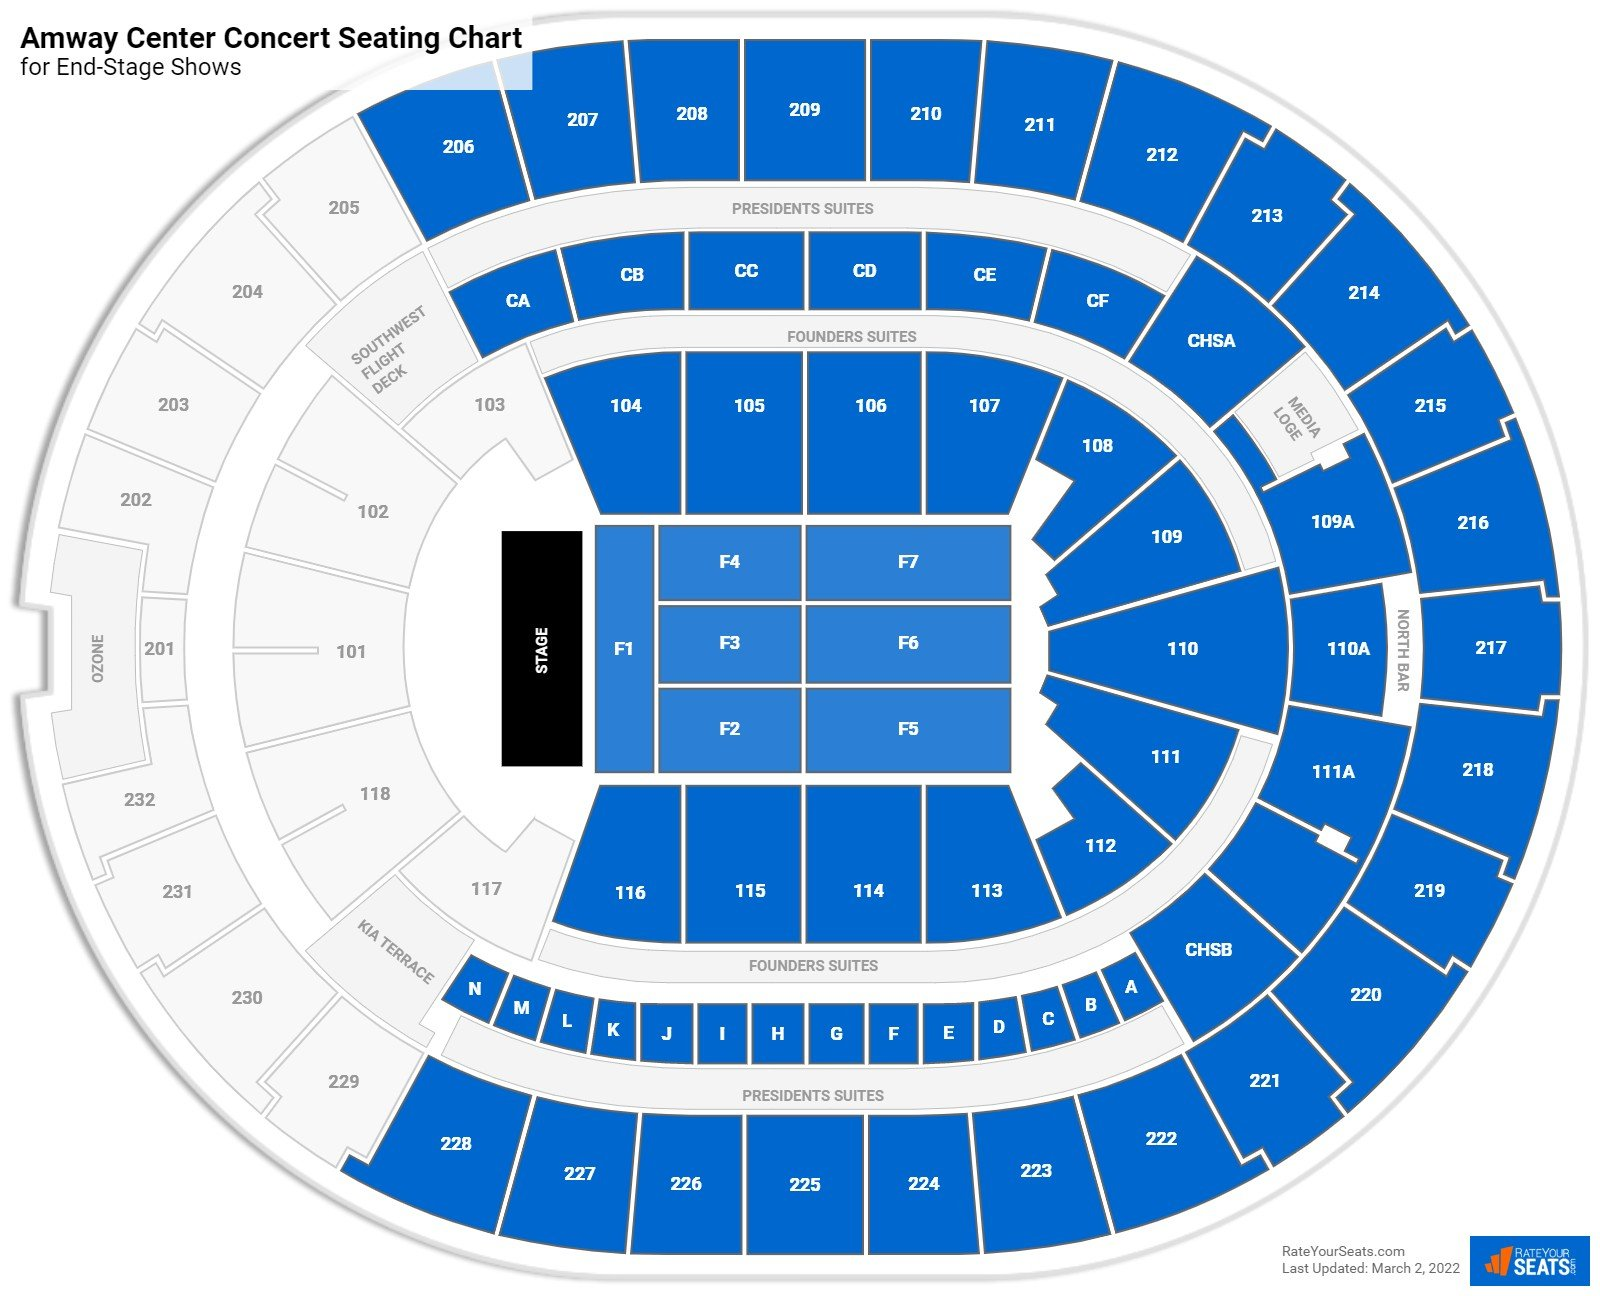 Amway Center Seating Chart for Concerts